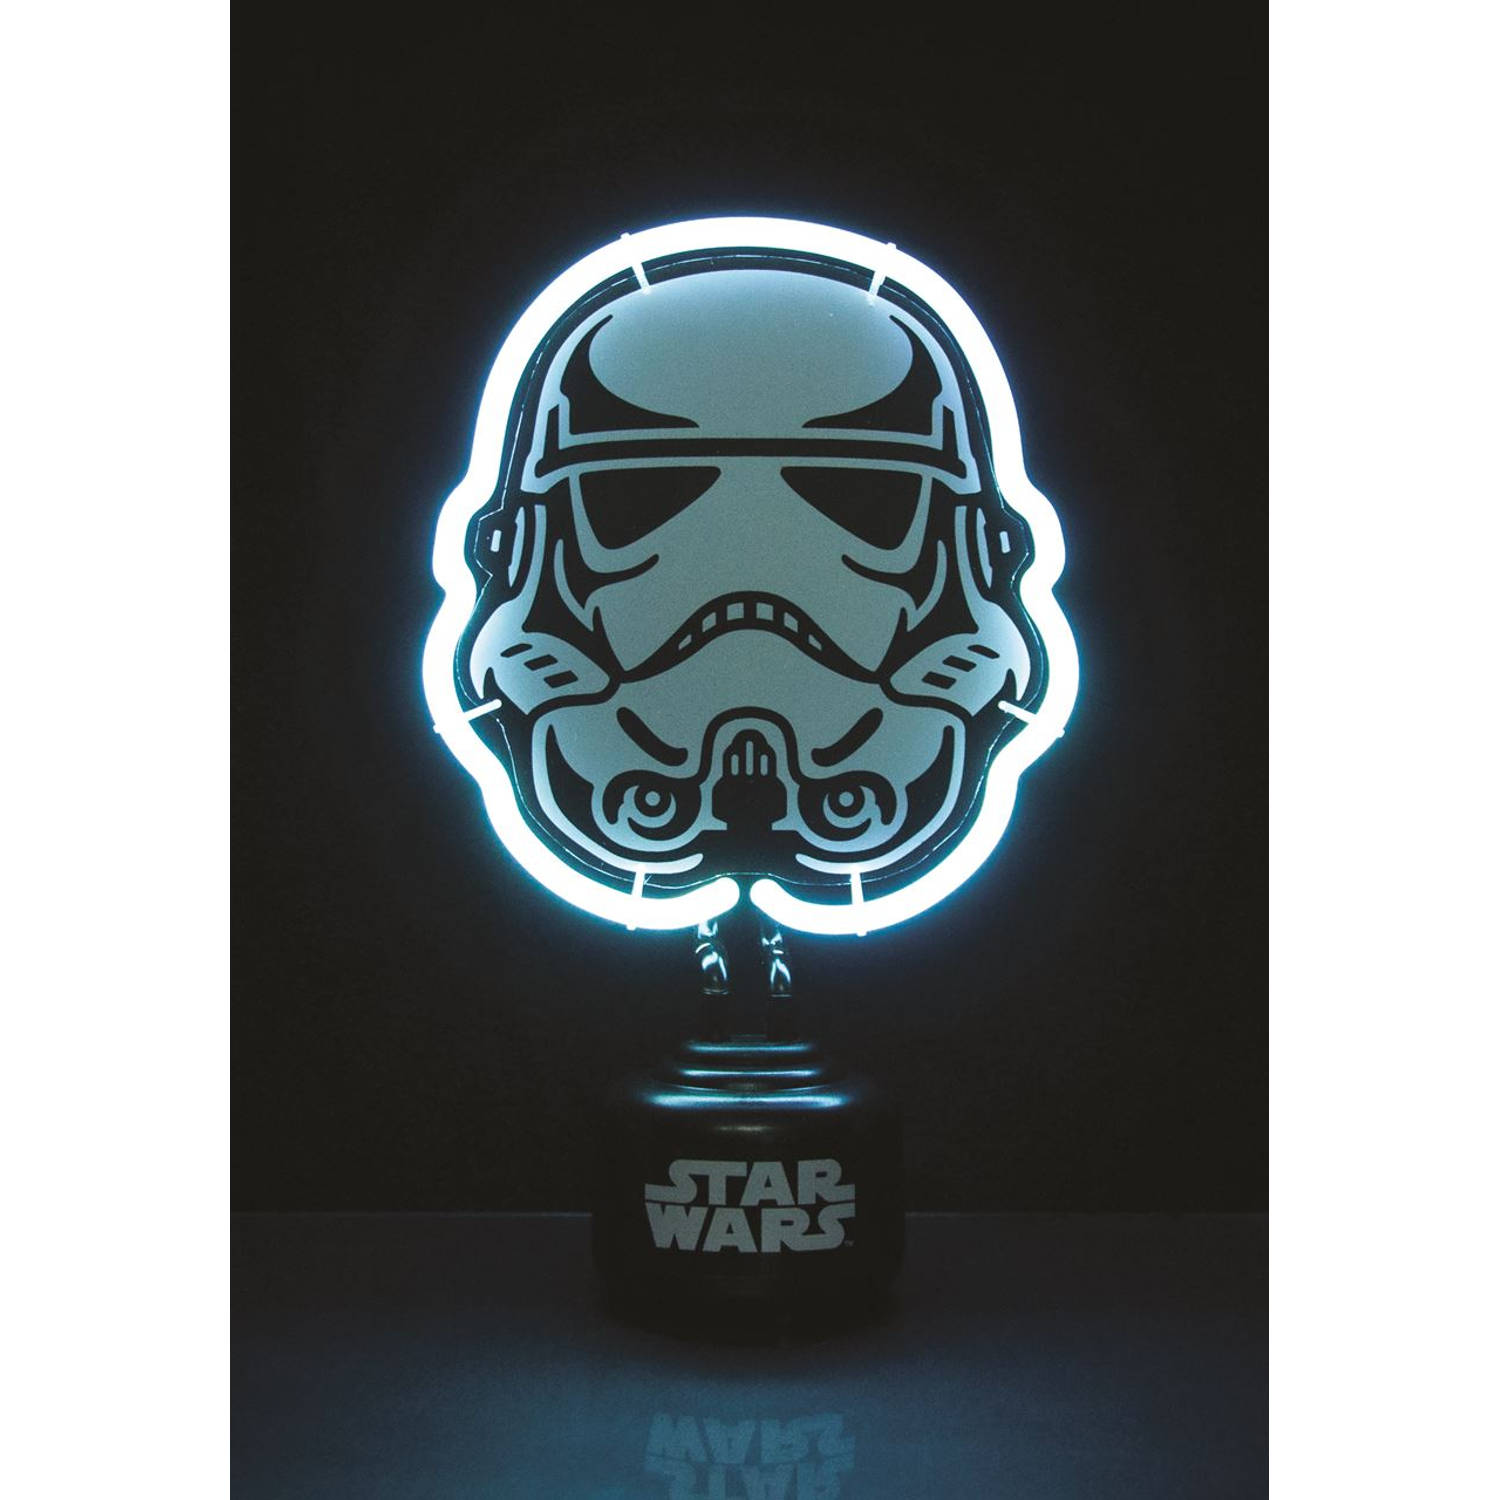 Fizz creations star wars stormtrooper neon lamp